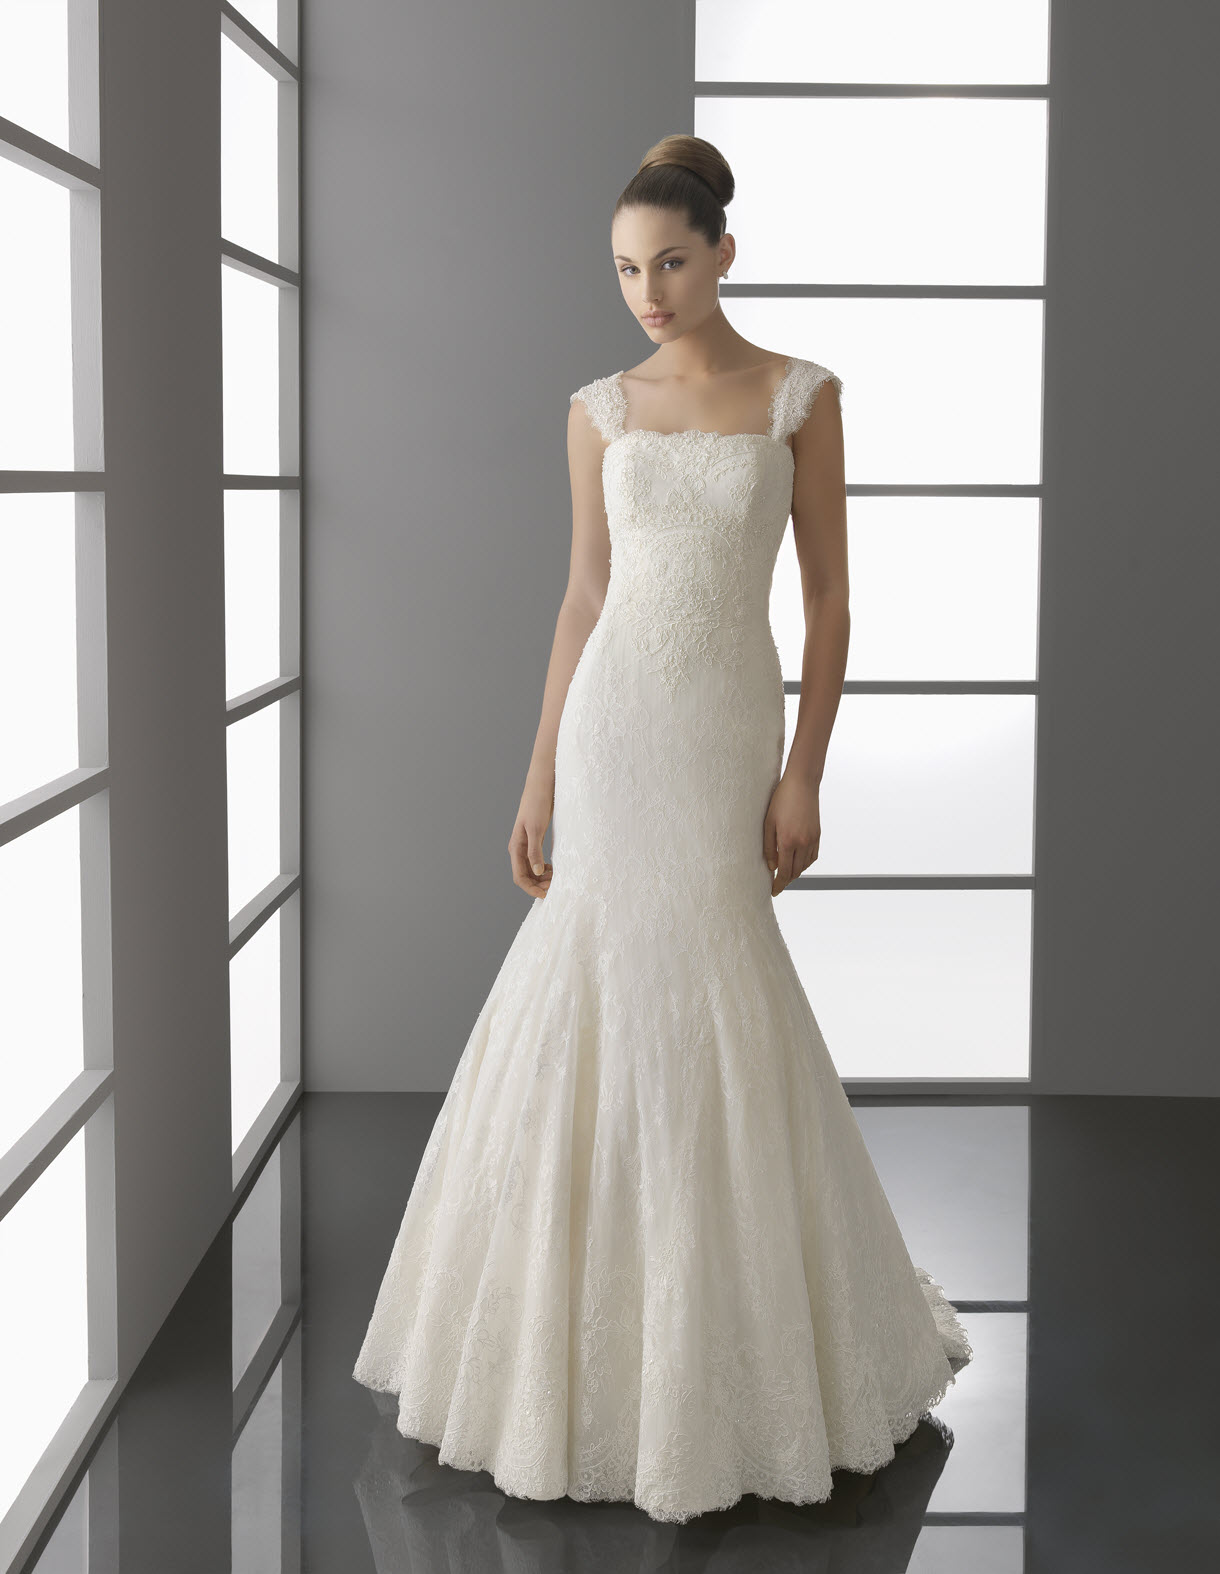 Ivory lace mermaid wedding dress with drop waist and cap